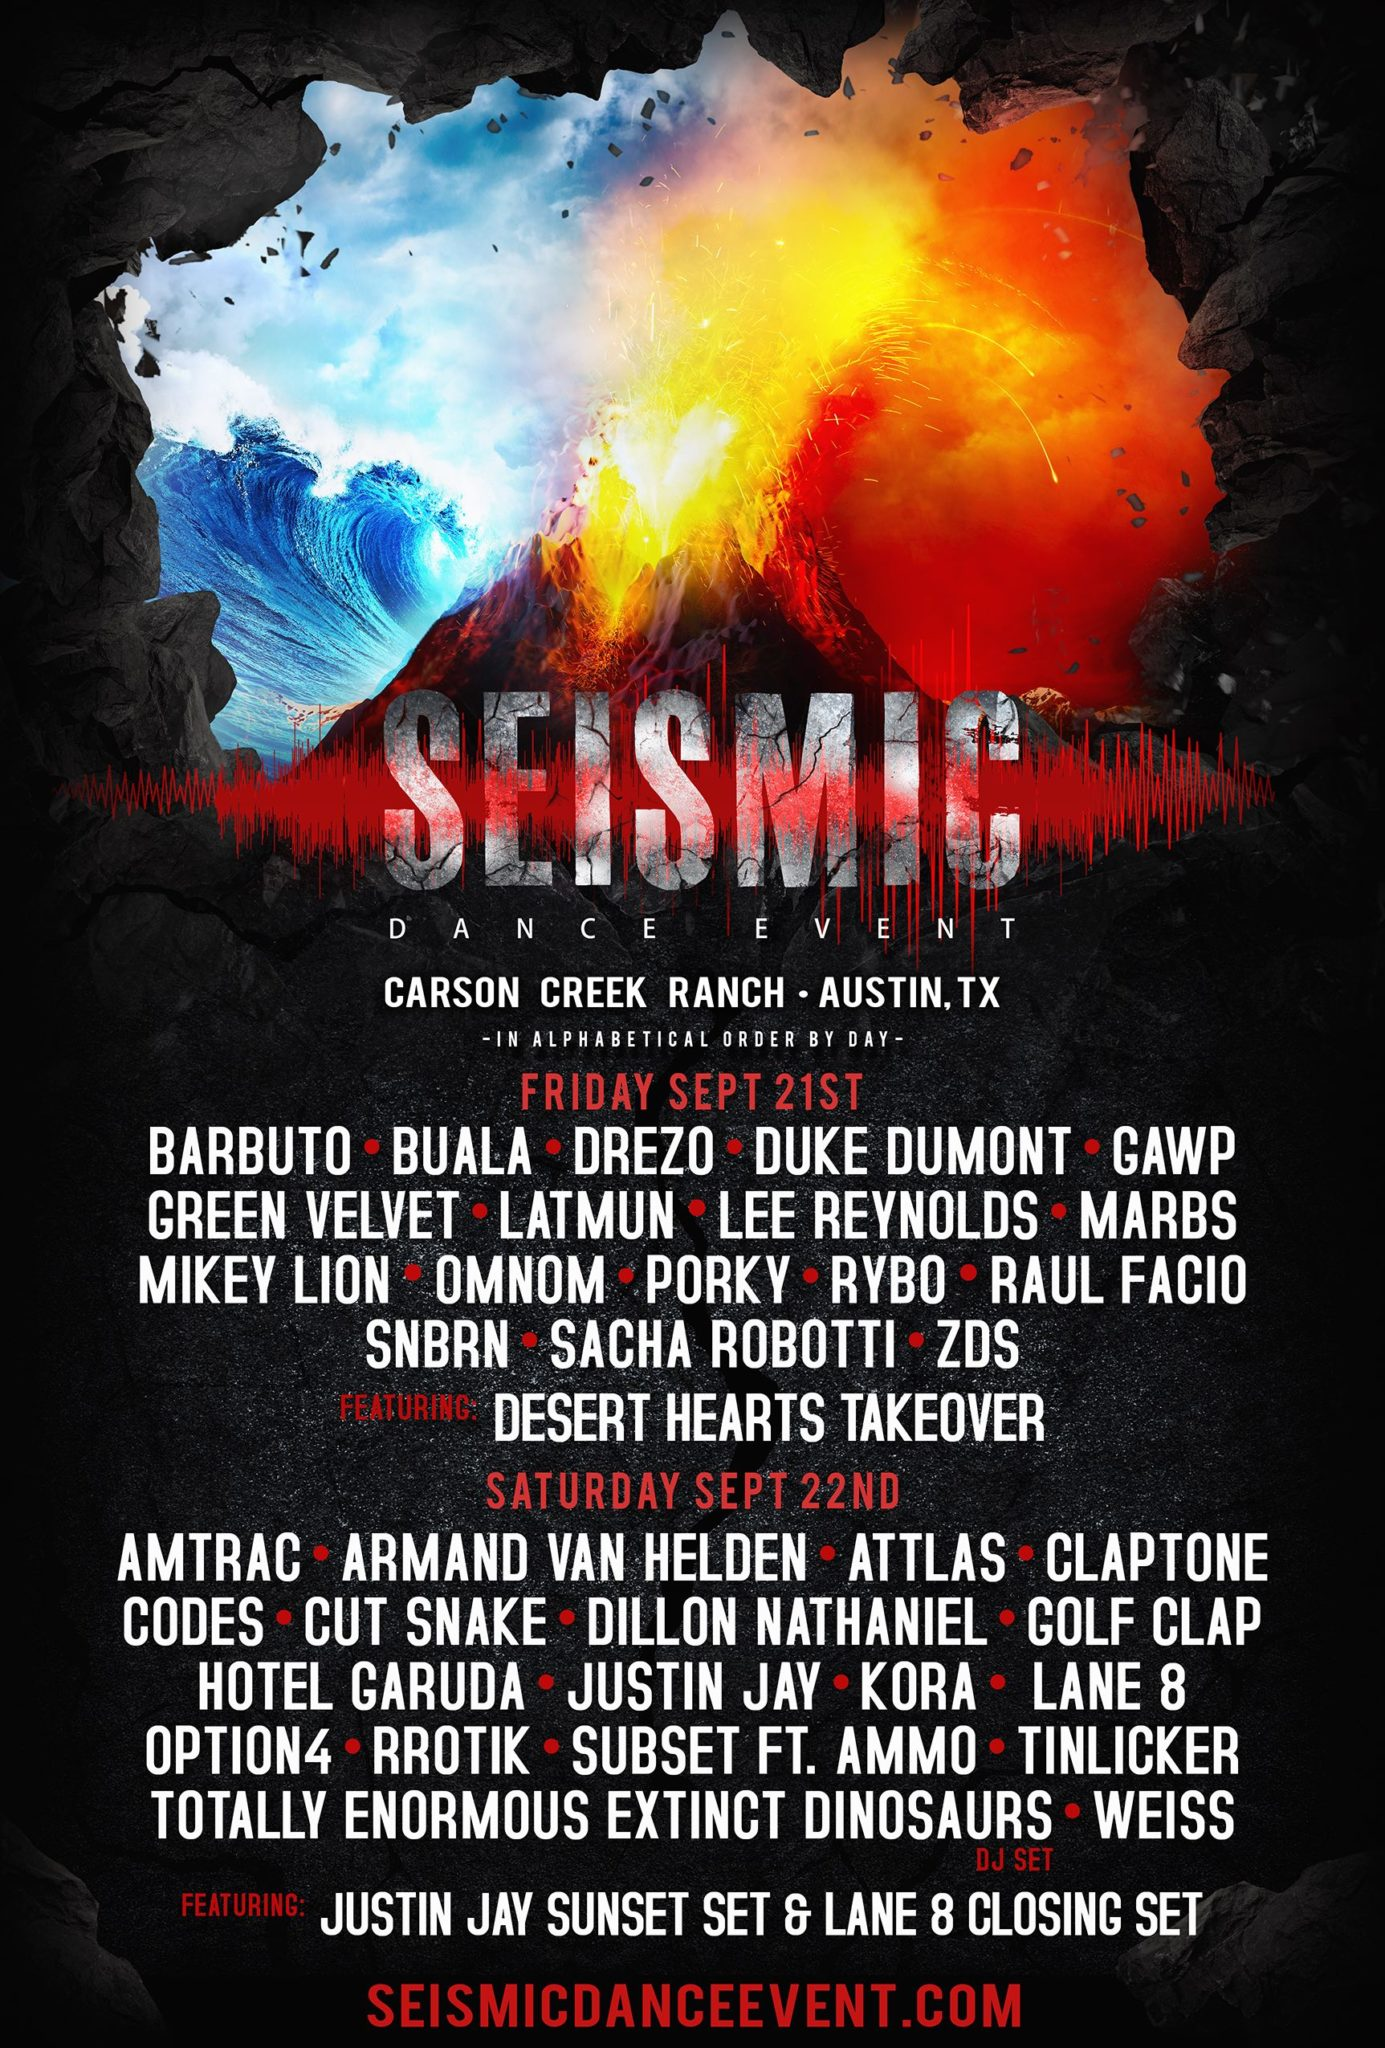 Seismic Dance Event 2018 lineup poster